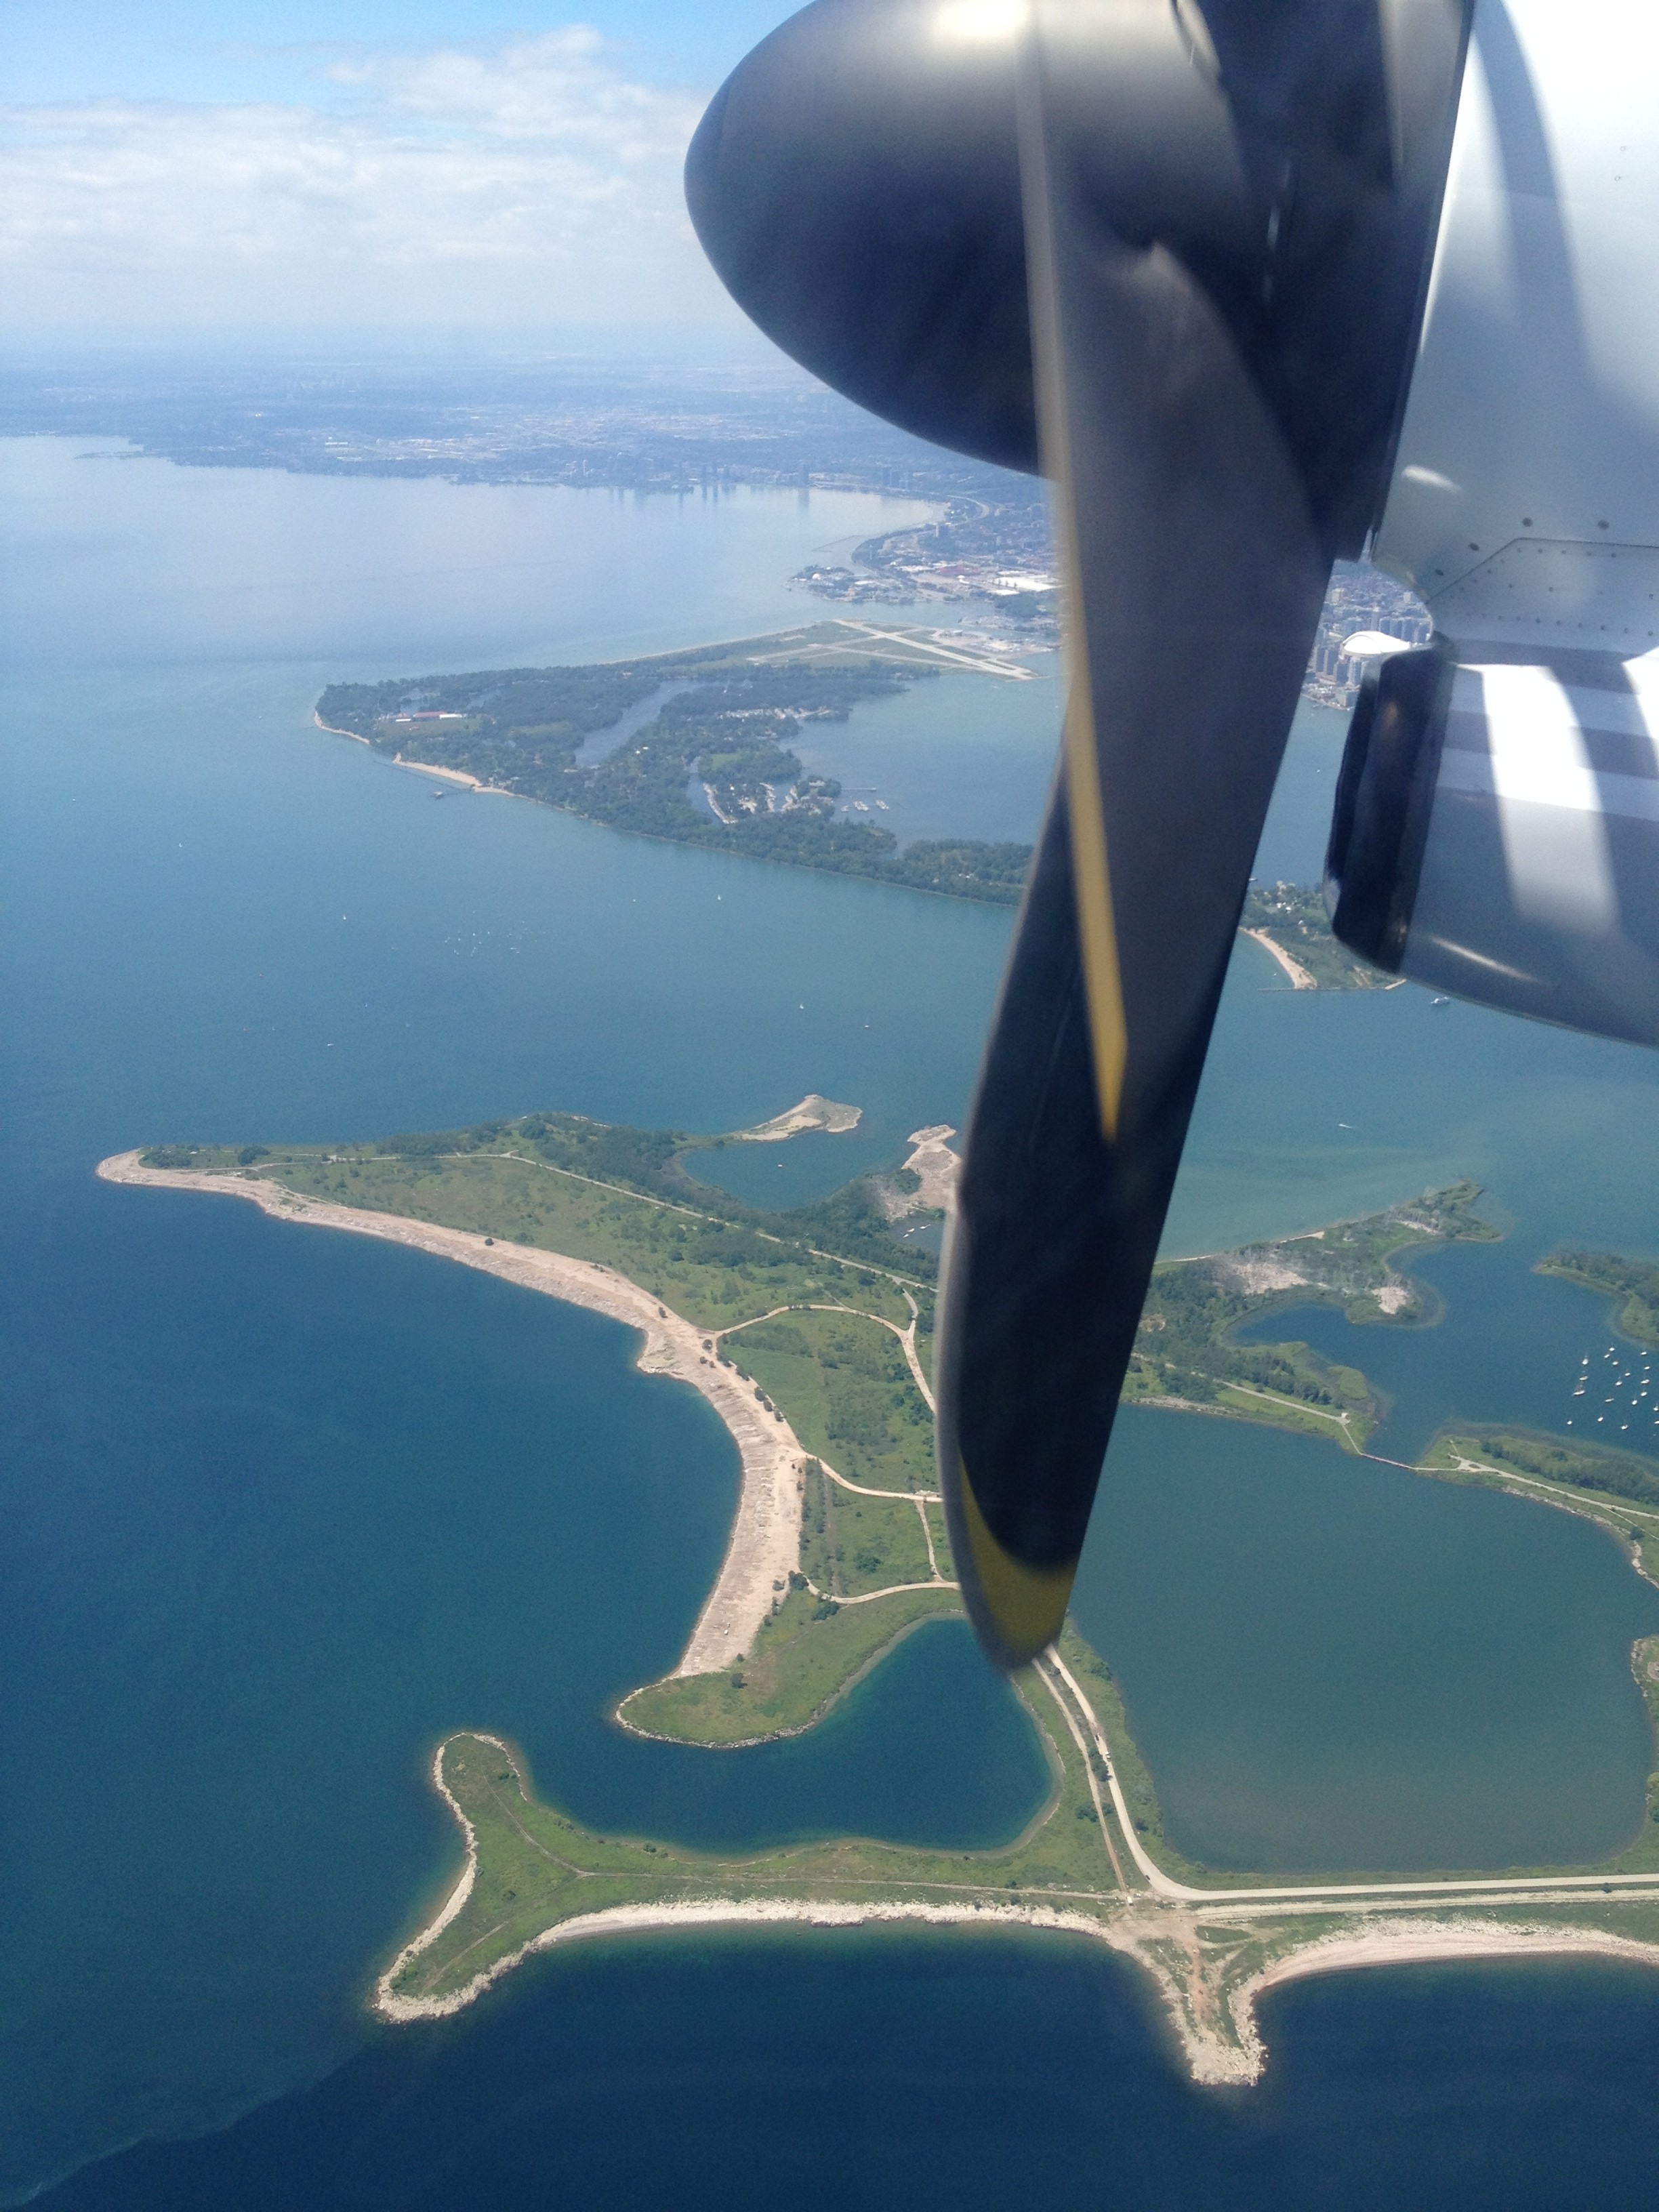 20da6c4d8e3a Flying Porter out of the Toronto Island Airport